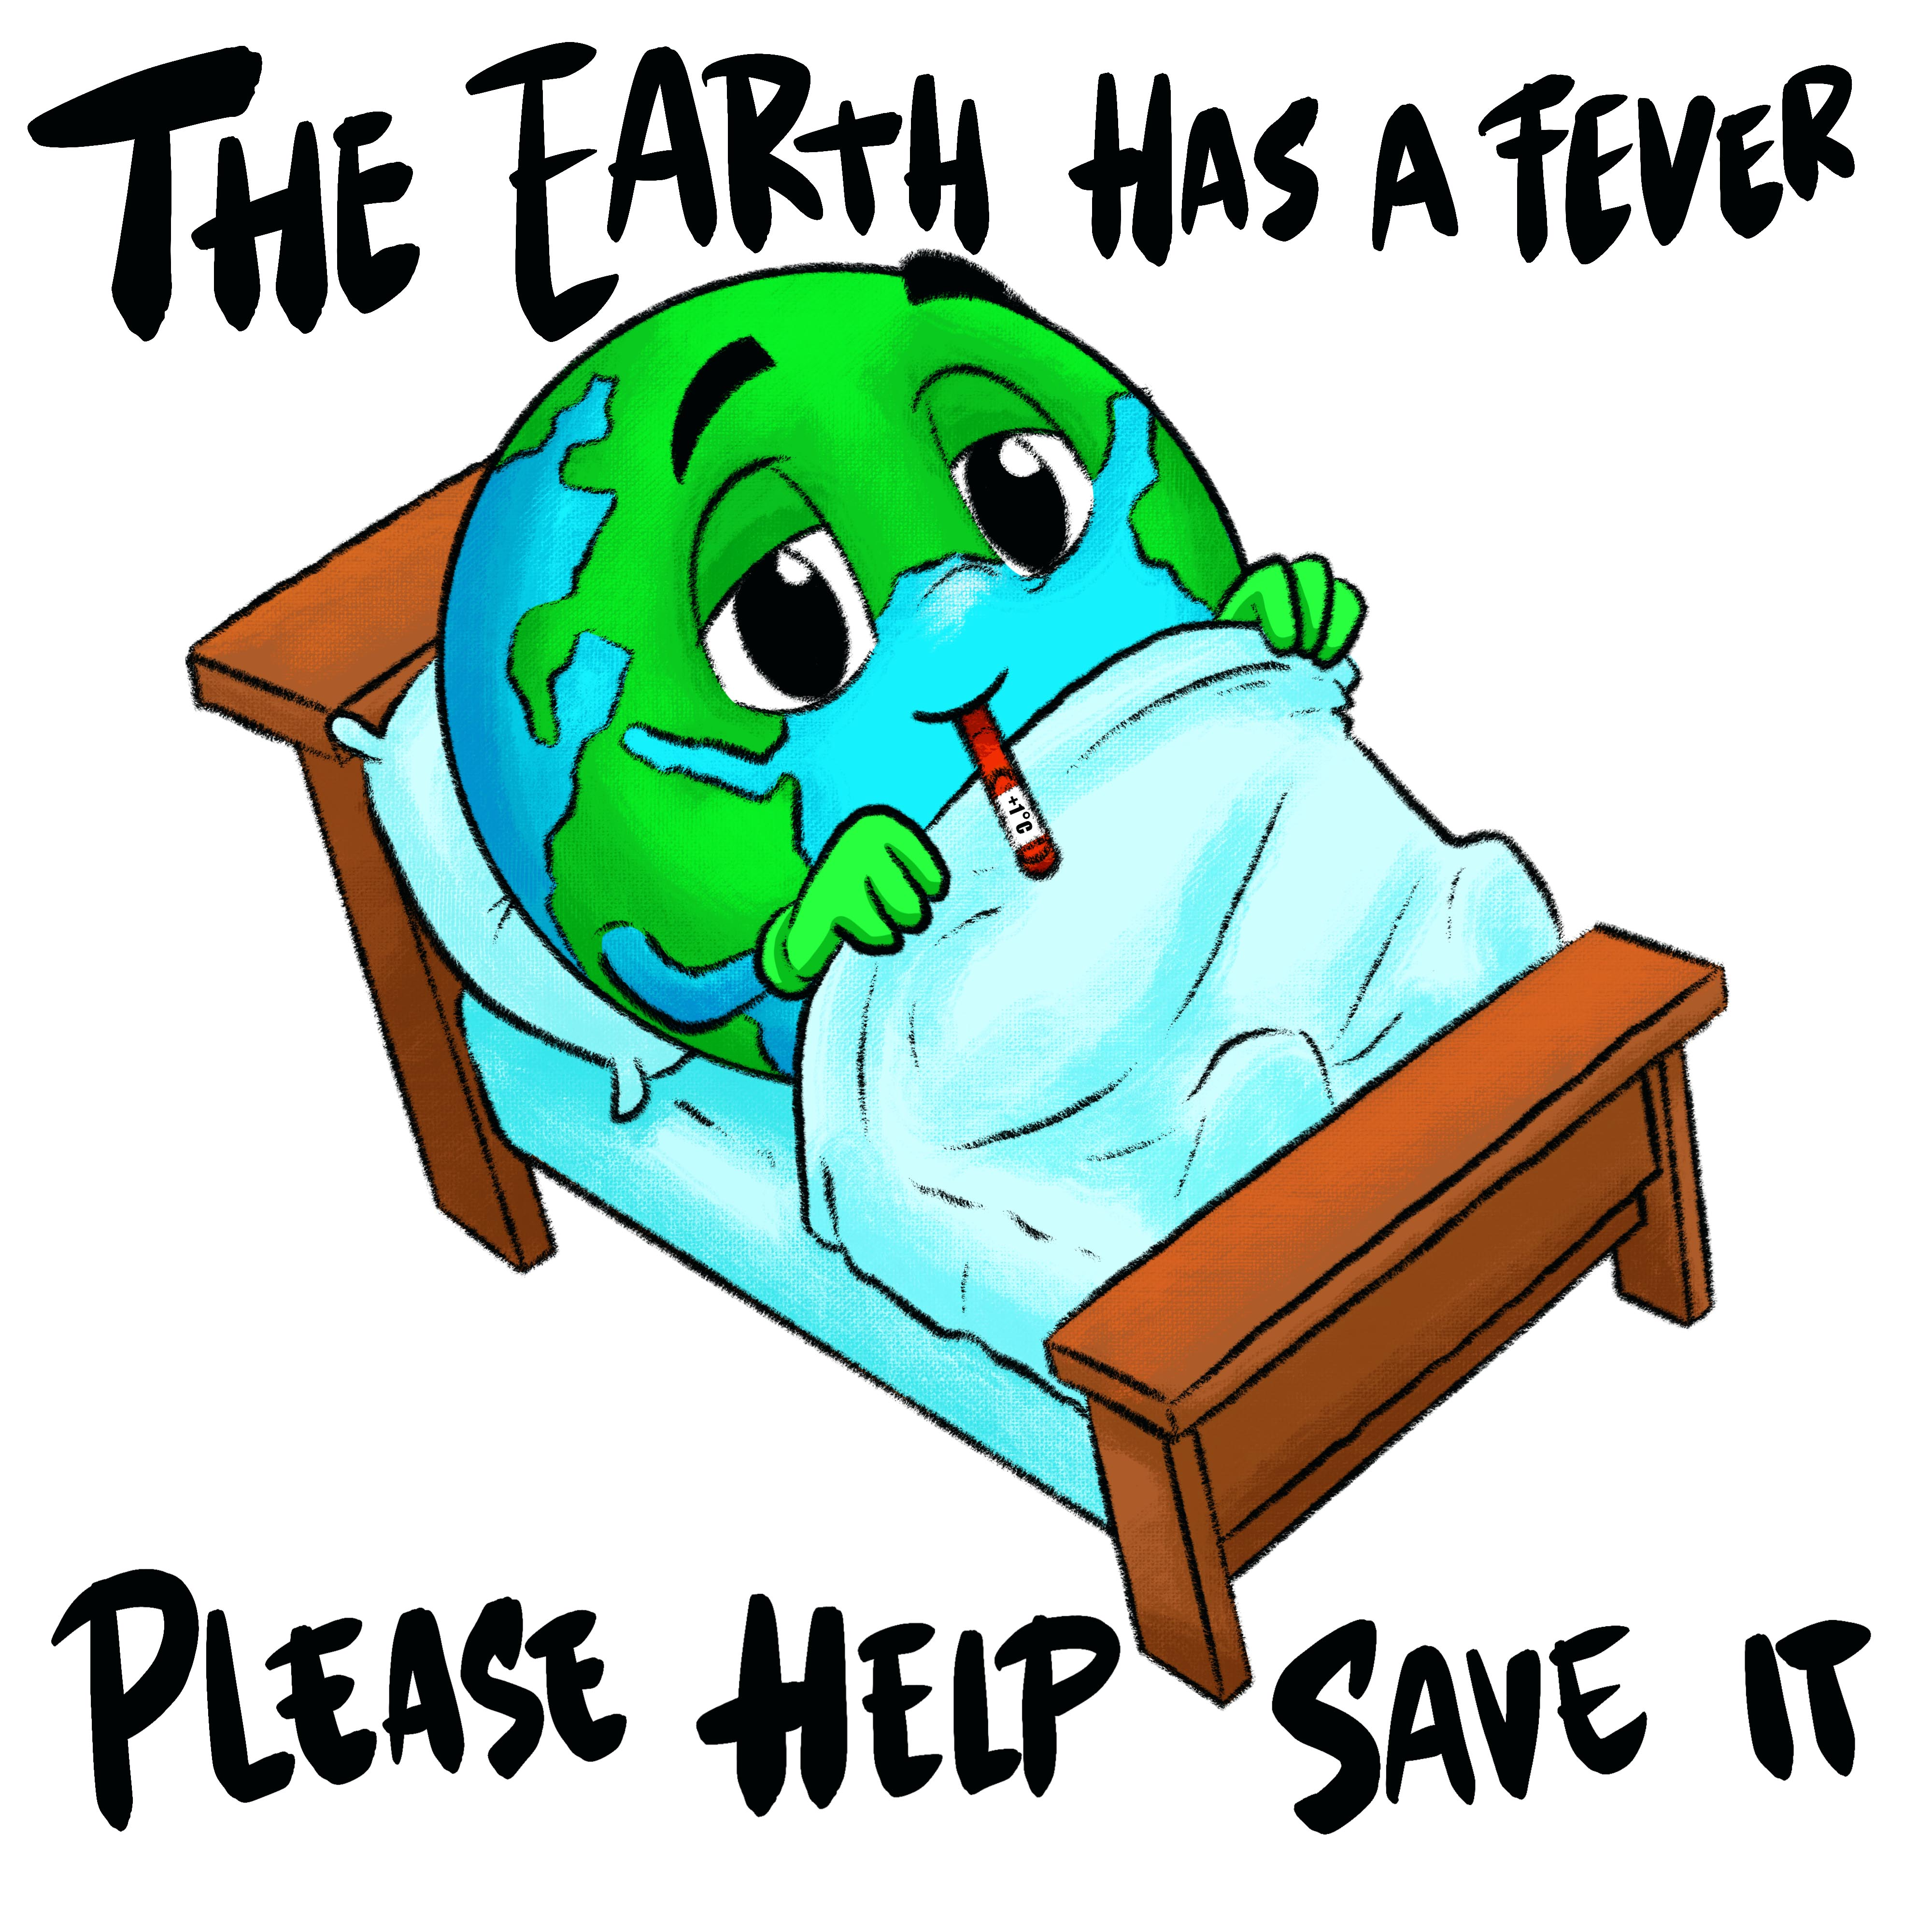 Earth has a fever